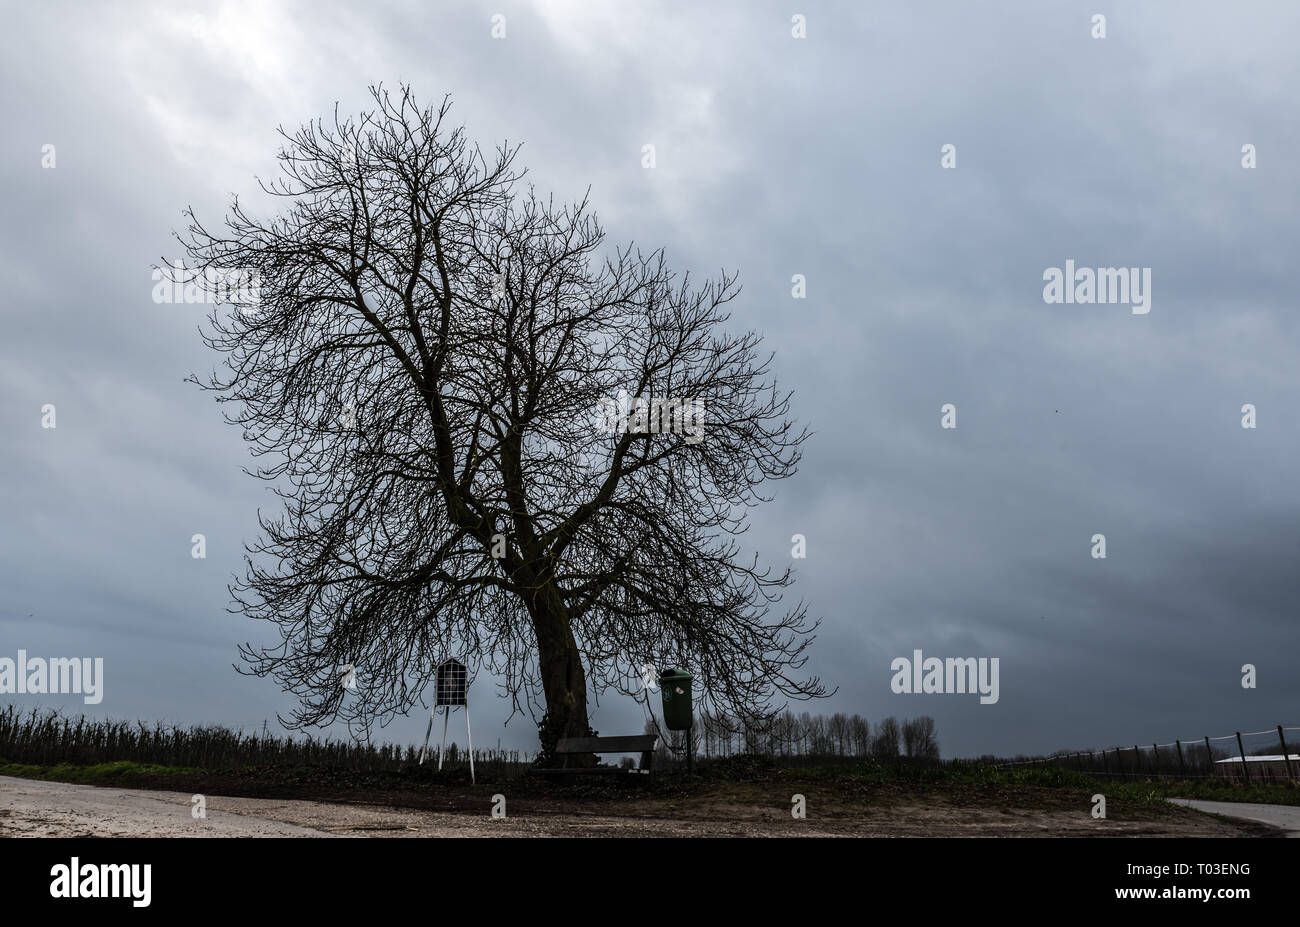 Lonely bare tree and empty Farmland with dark blue rainclouds in the background Stock Photo